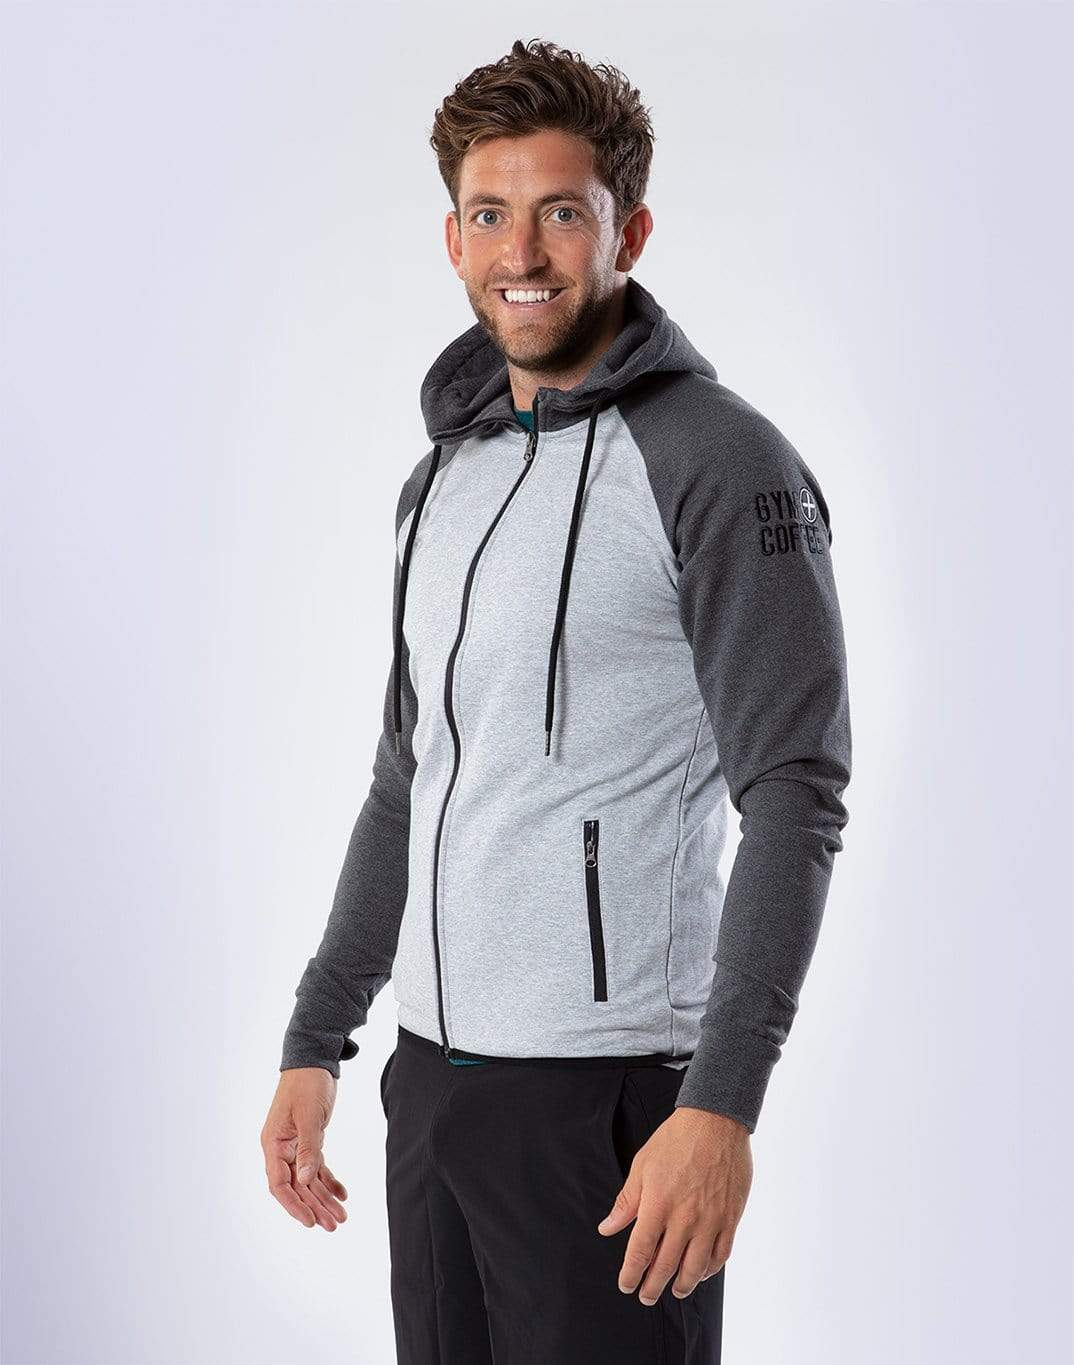 Gym Plus Coffee Hoodie Men's 2Tone Charcoal Grey Hoodie Designed in Ireland